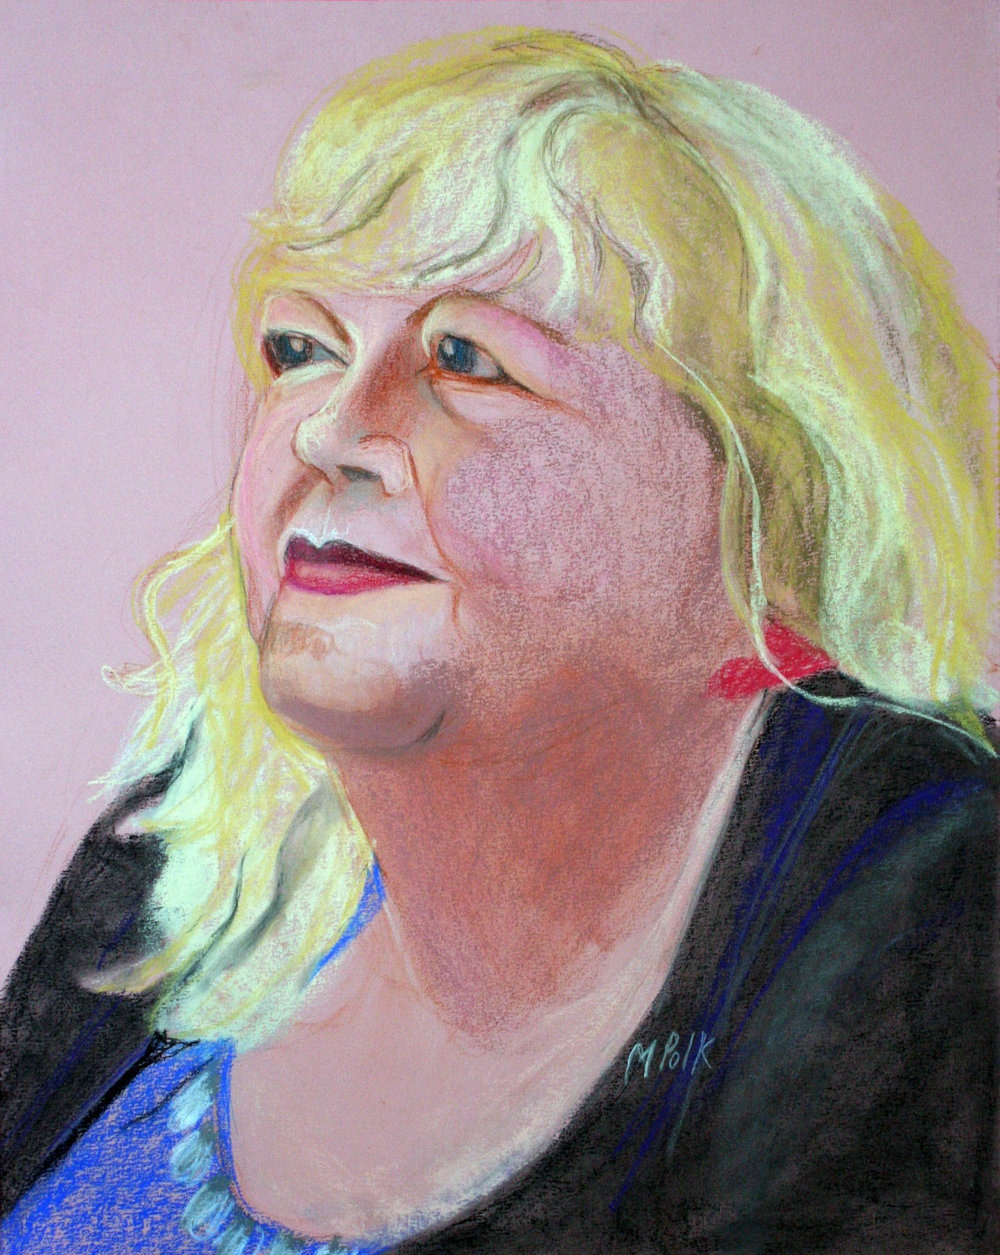 Maria Polk did this pastel drawing.